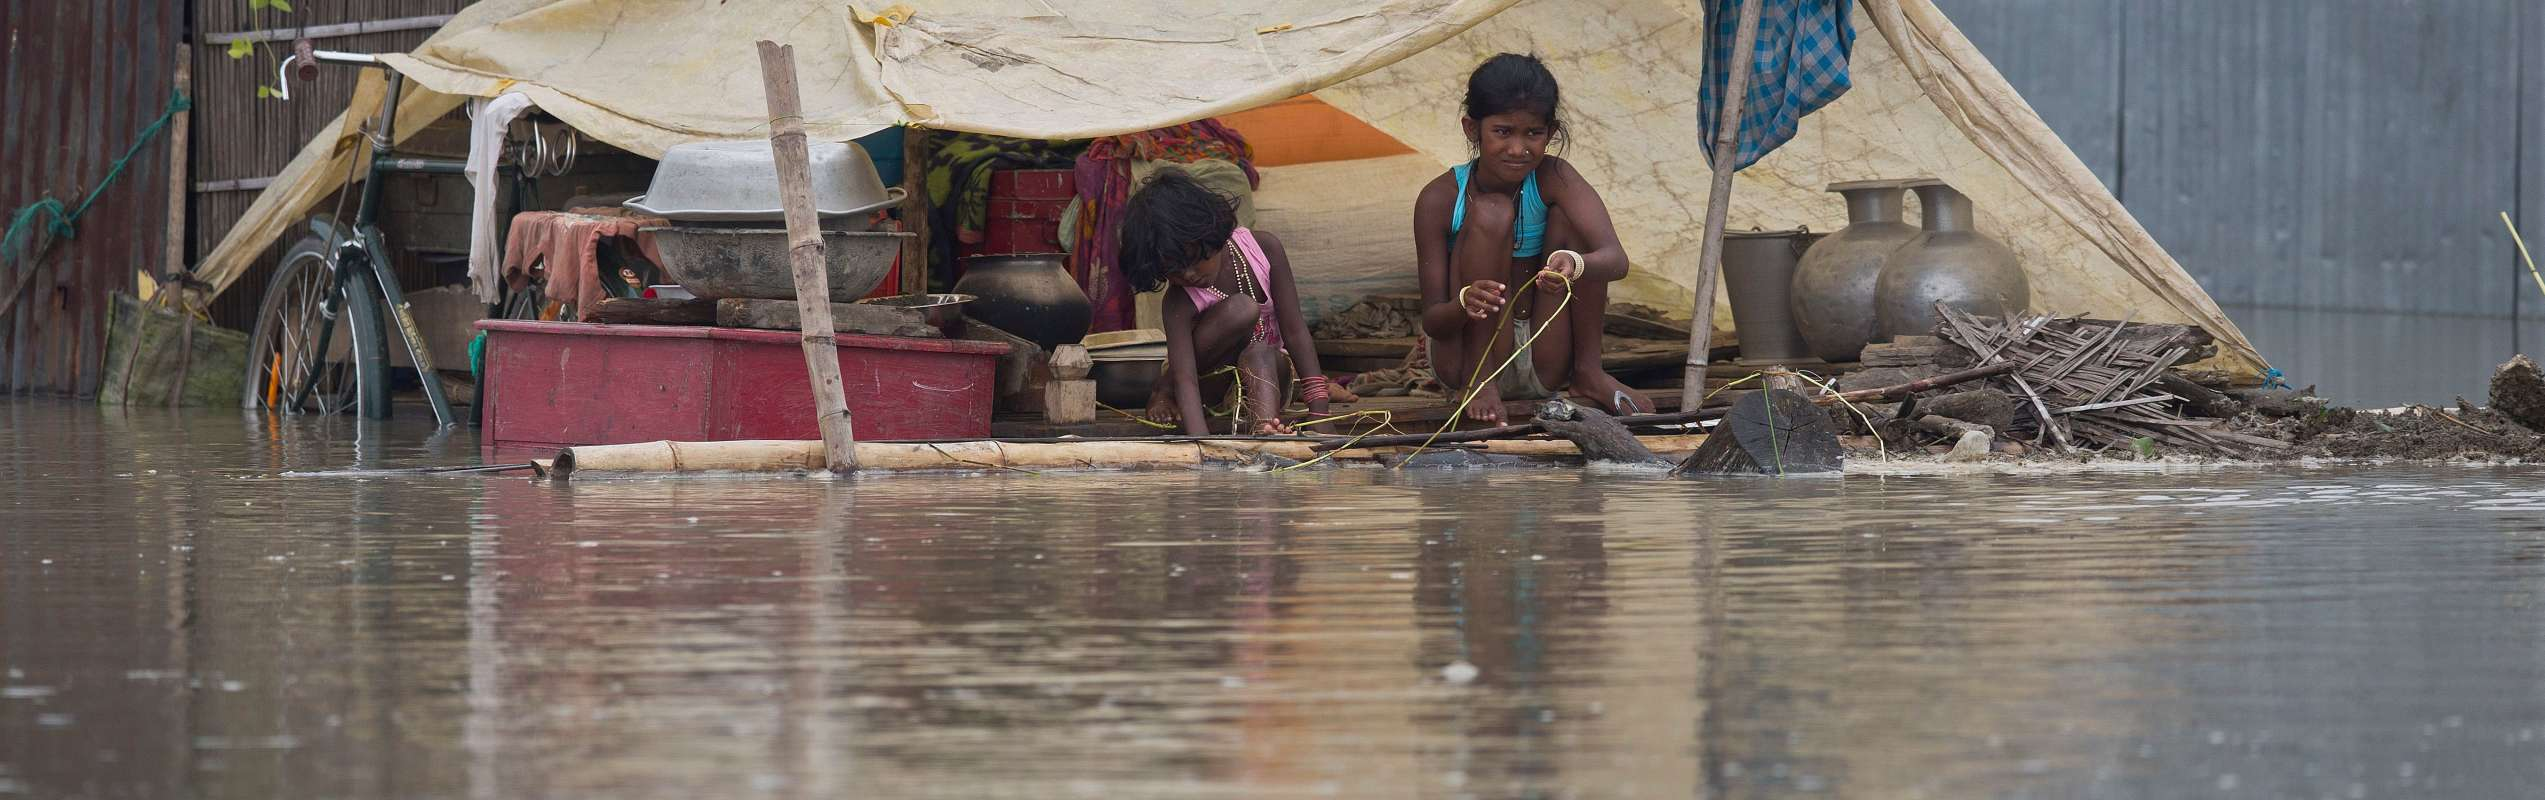 Girls surrounded by floodwater shelter under tarpaulin during India floods